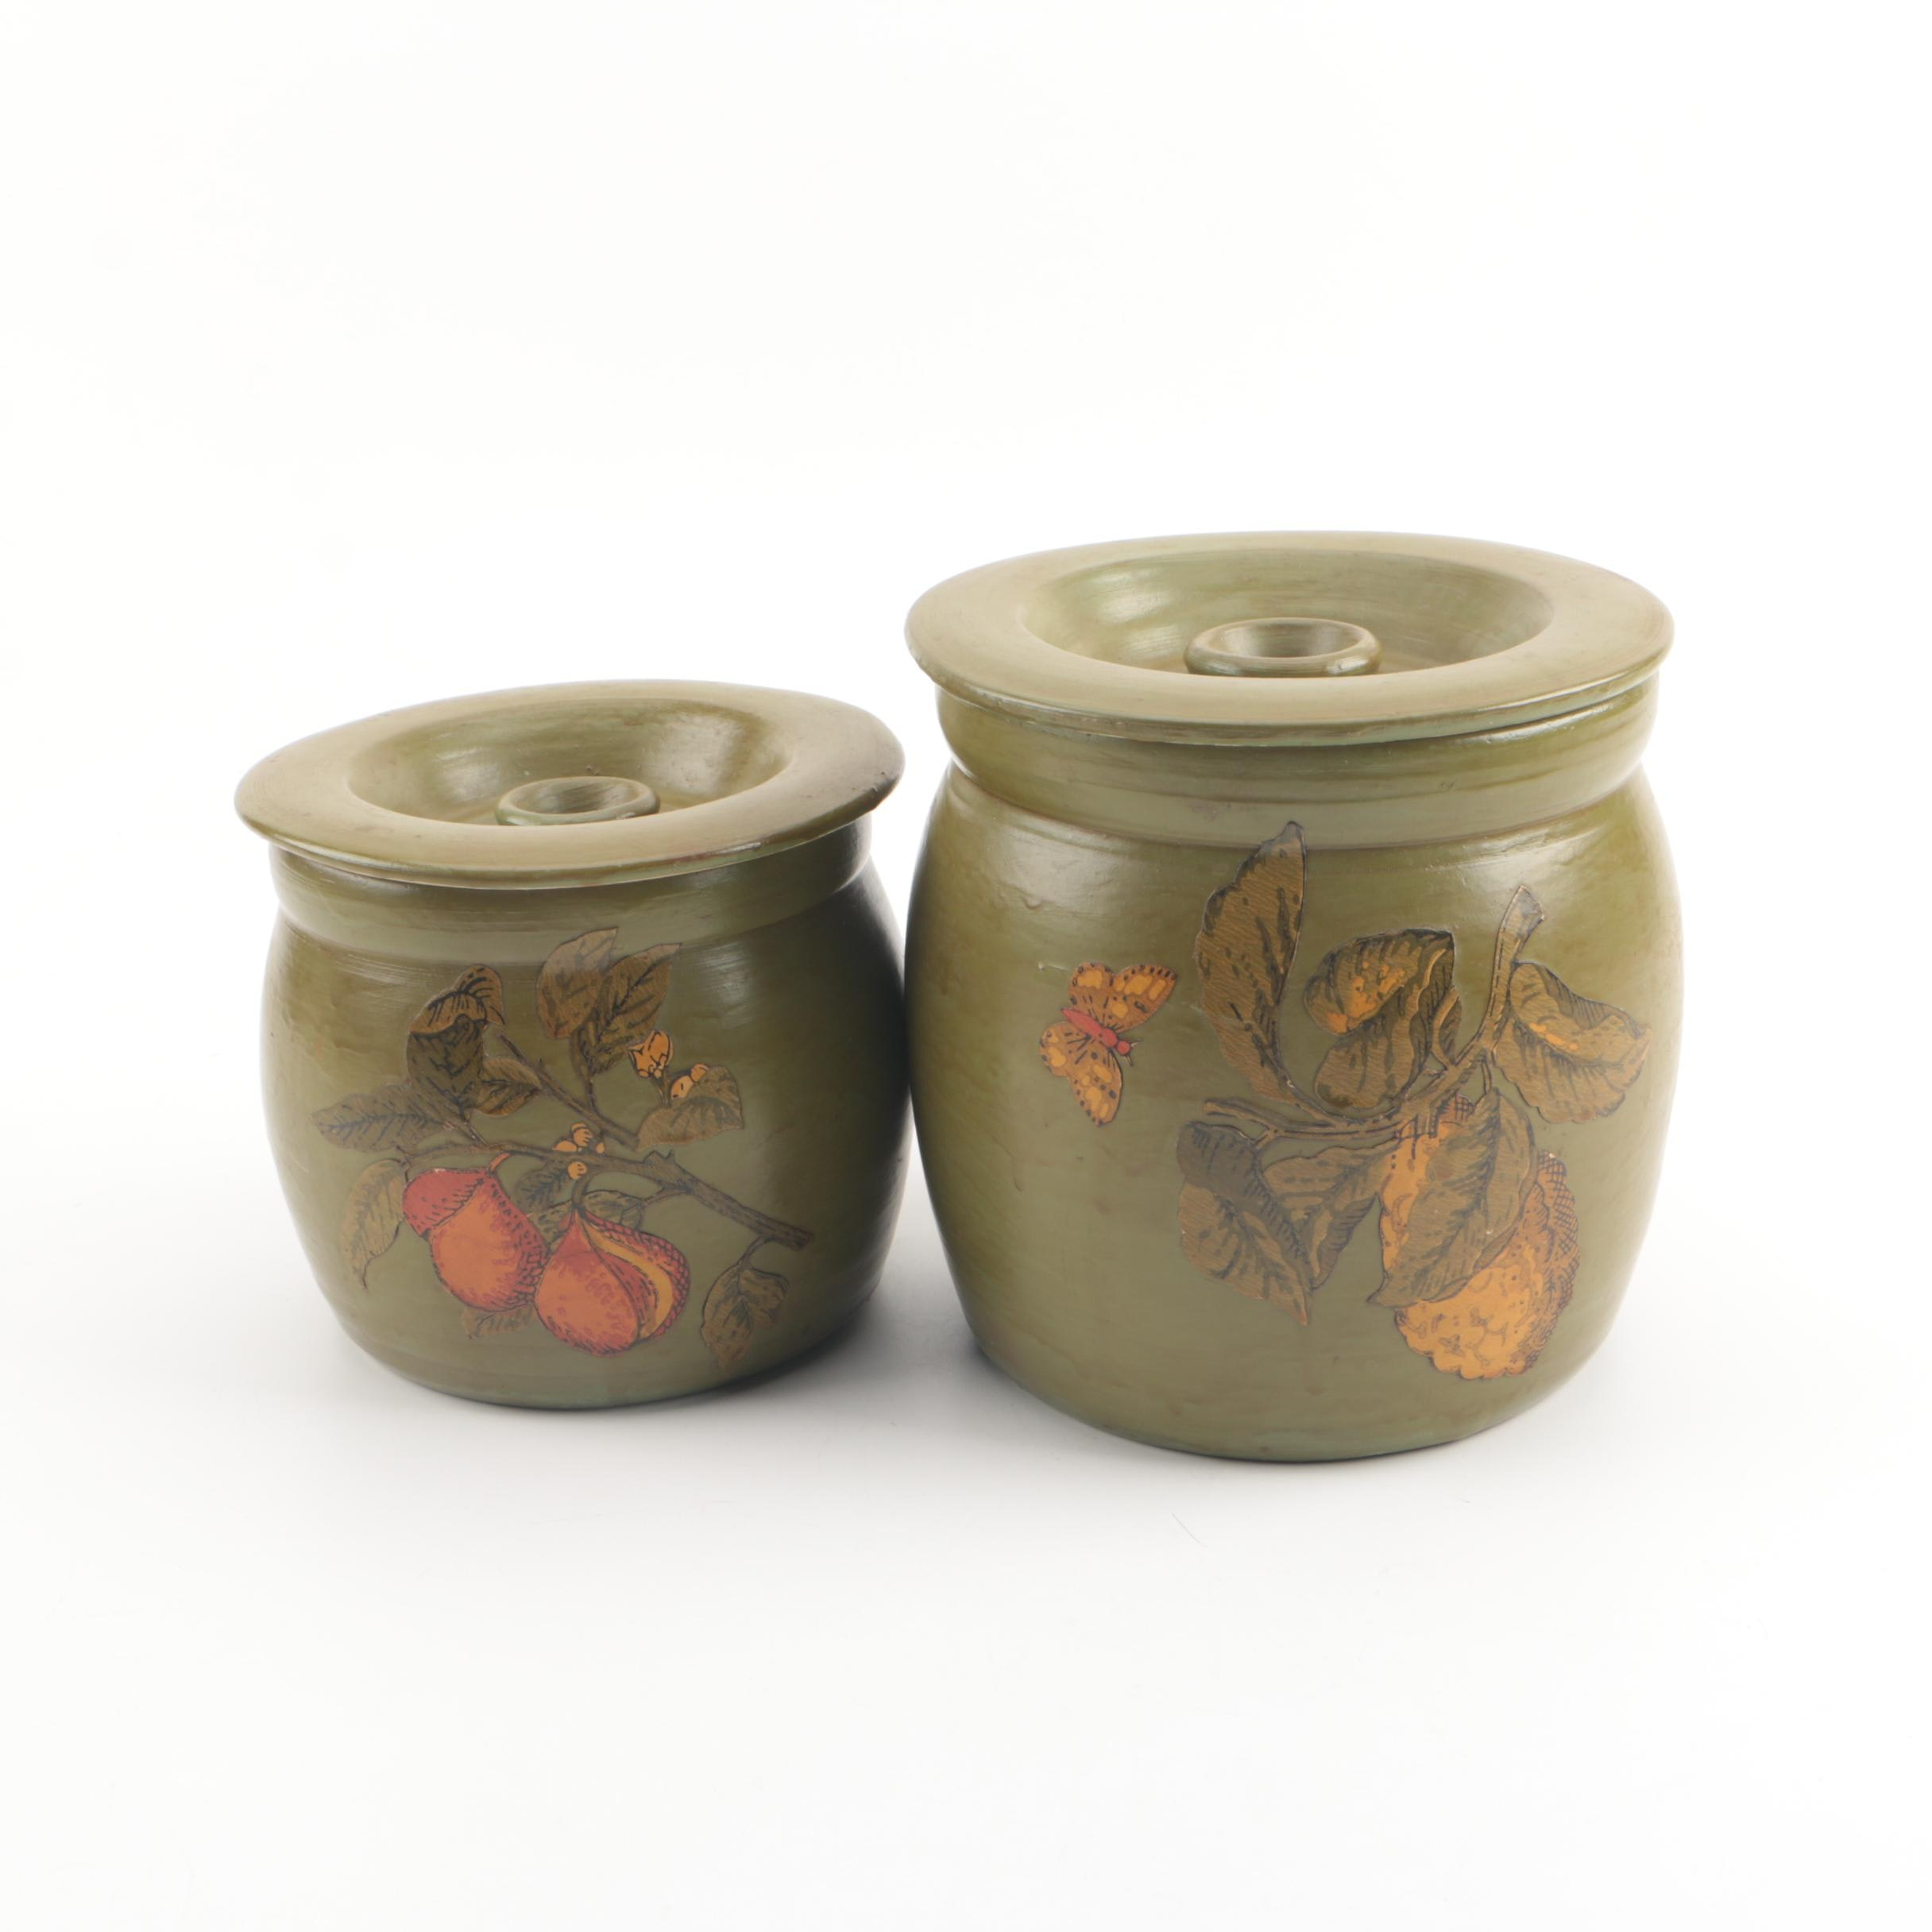 Vintage Stoneware Kitchen Canisters